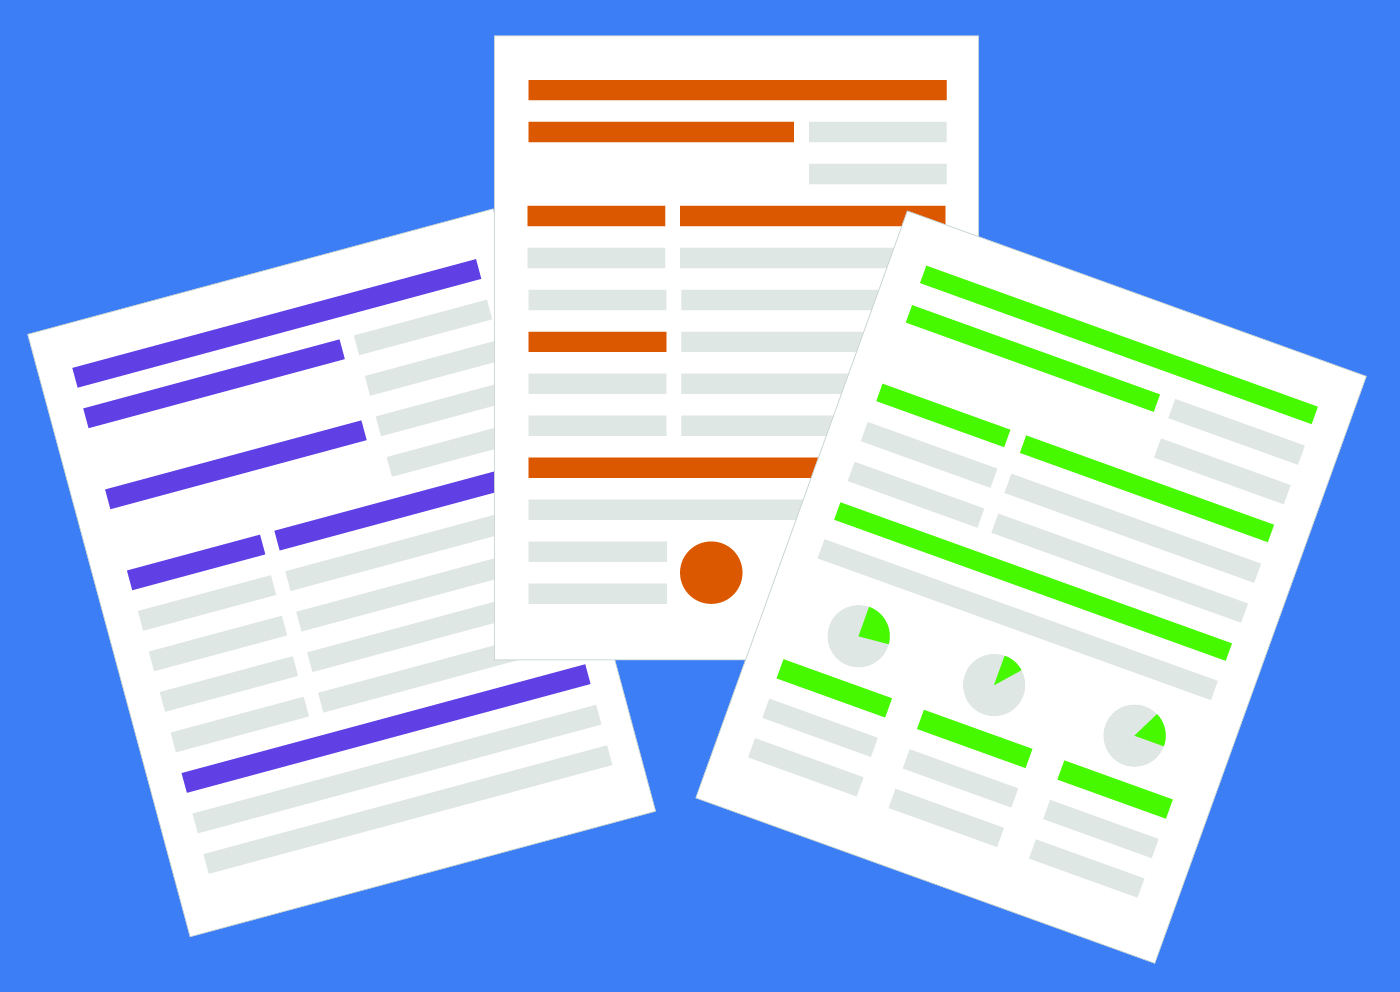 Image rendering of three resumes. The resumes have no text, only colored bars indicating where text would be